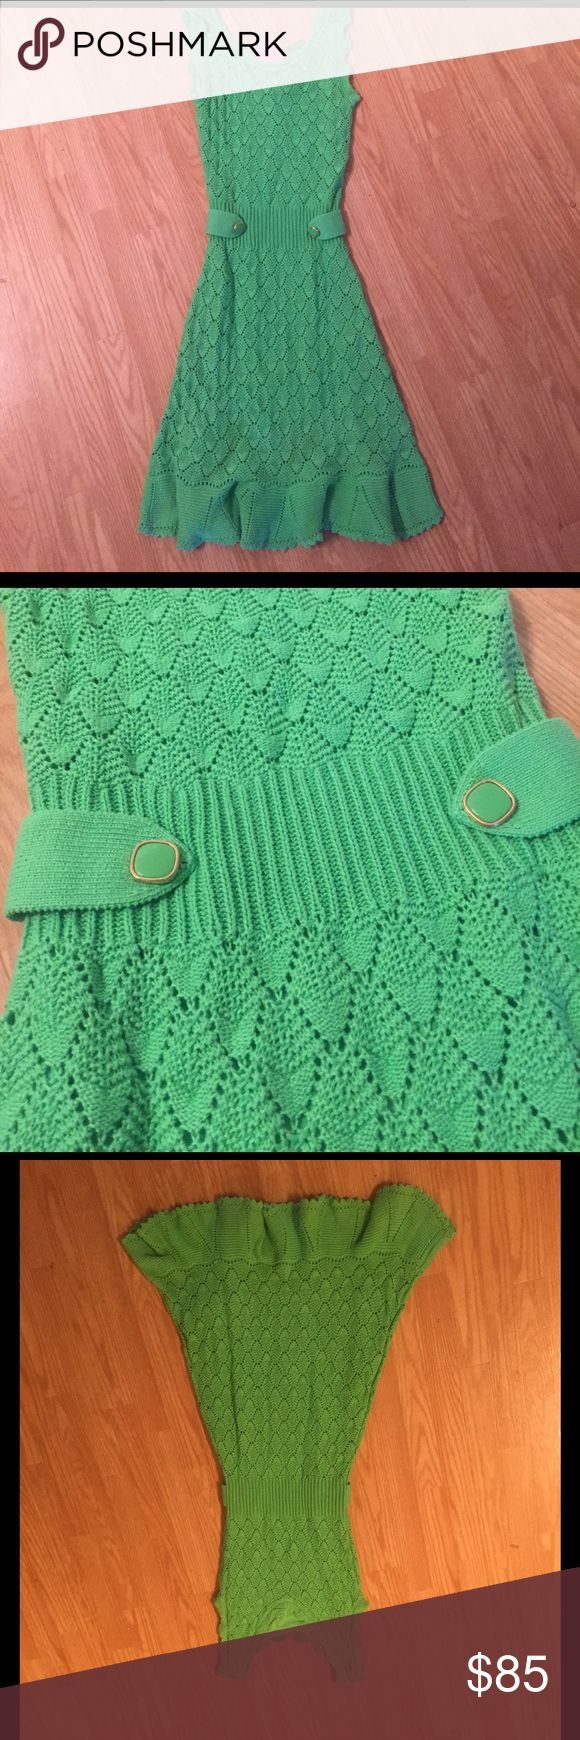 Lilly Pulitzer villa sweater dress NWT Lilly Pulitzer green sweater dress, never worn, great transitional piece! Lilly Pulitzer Dresses